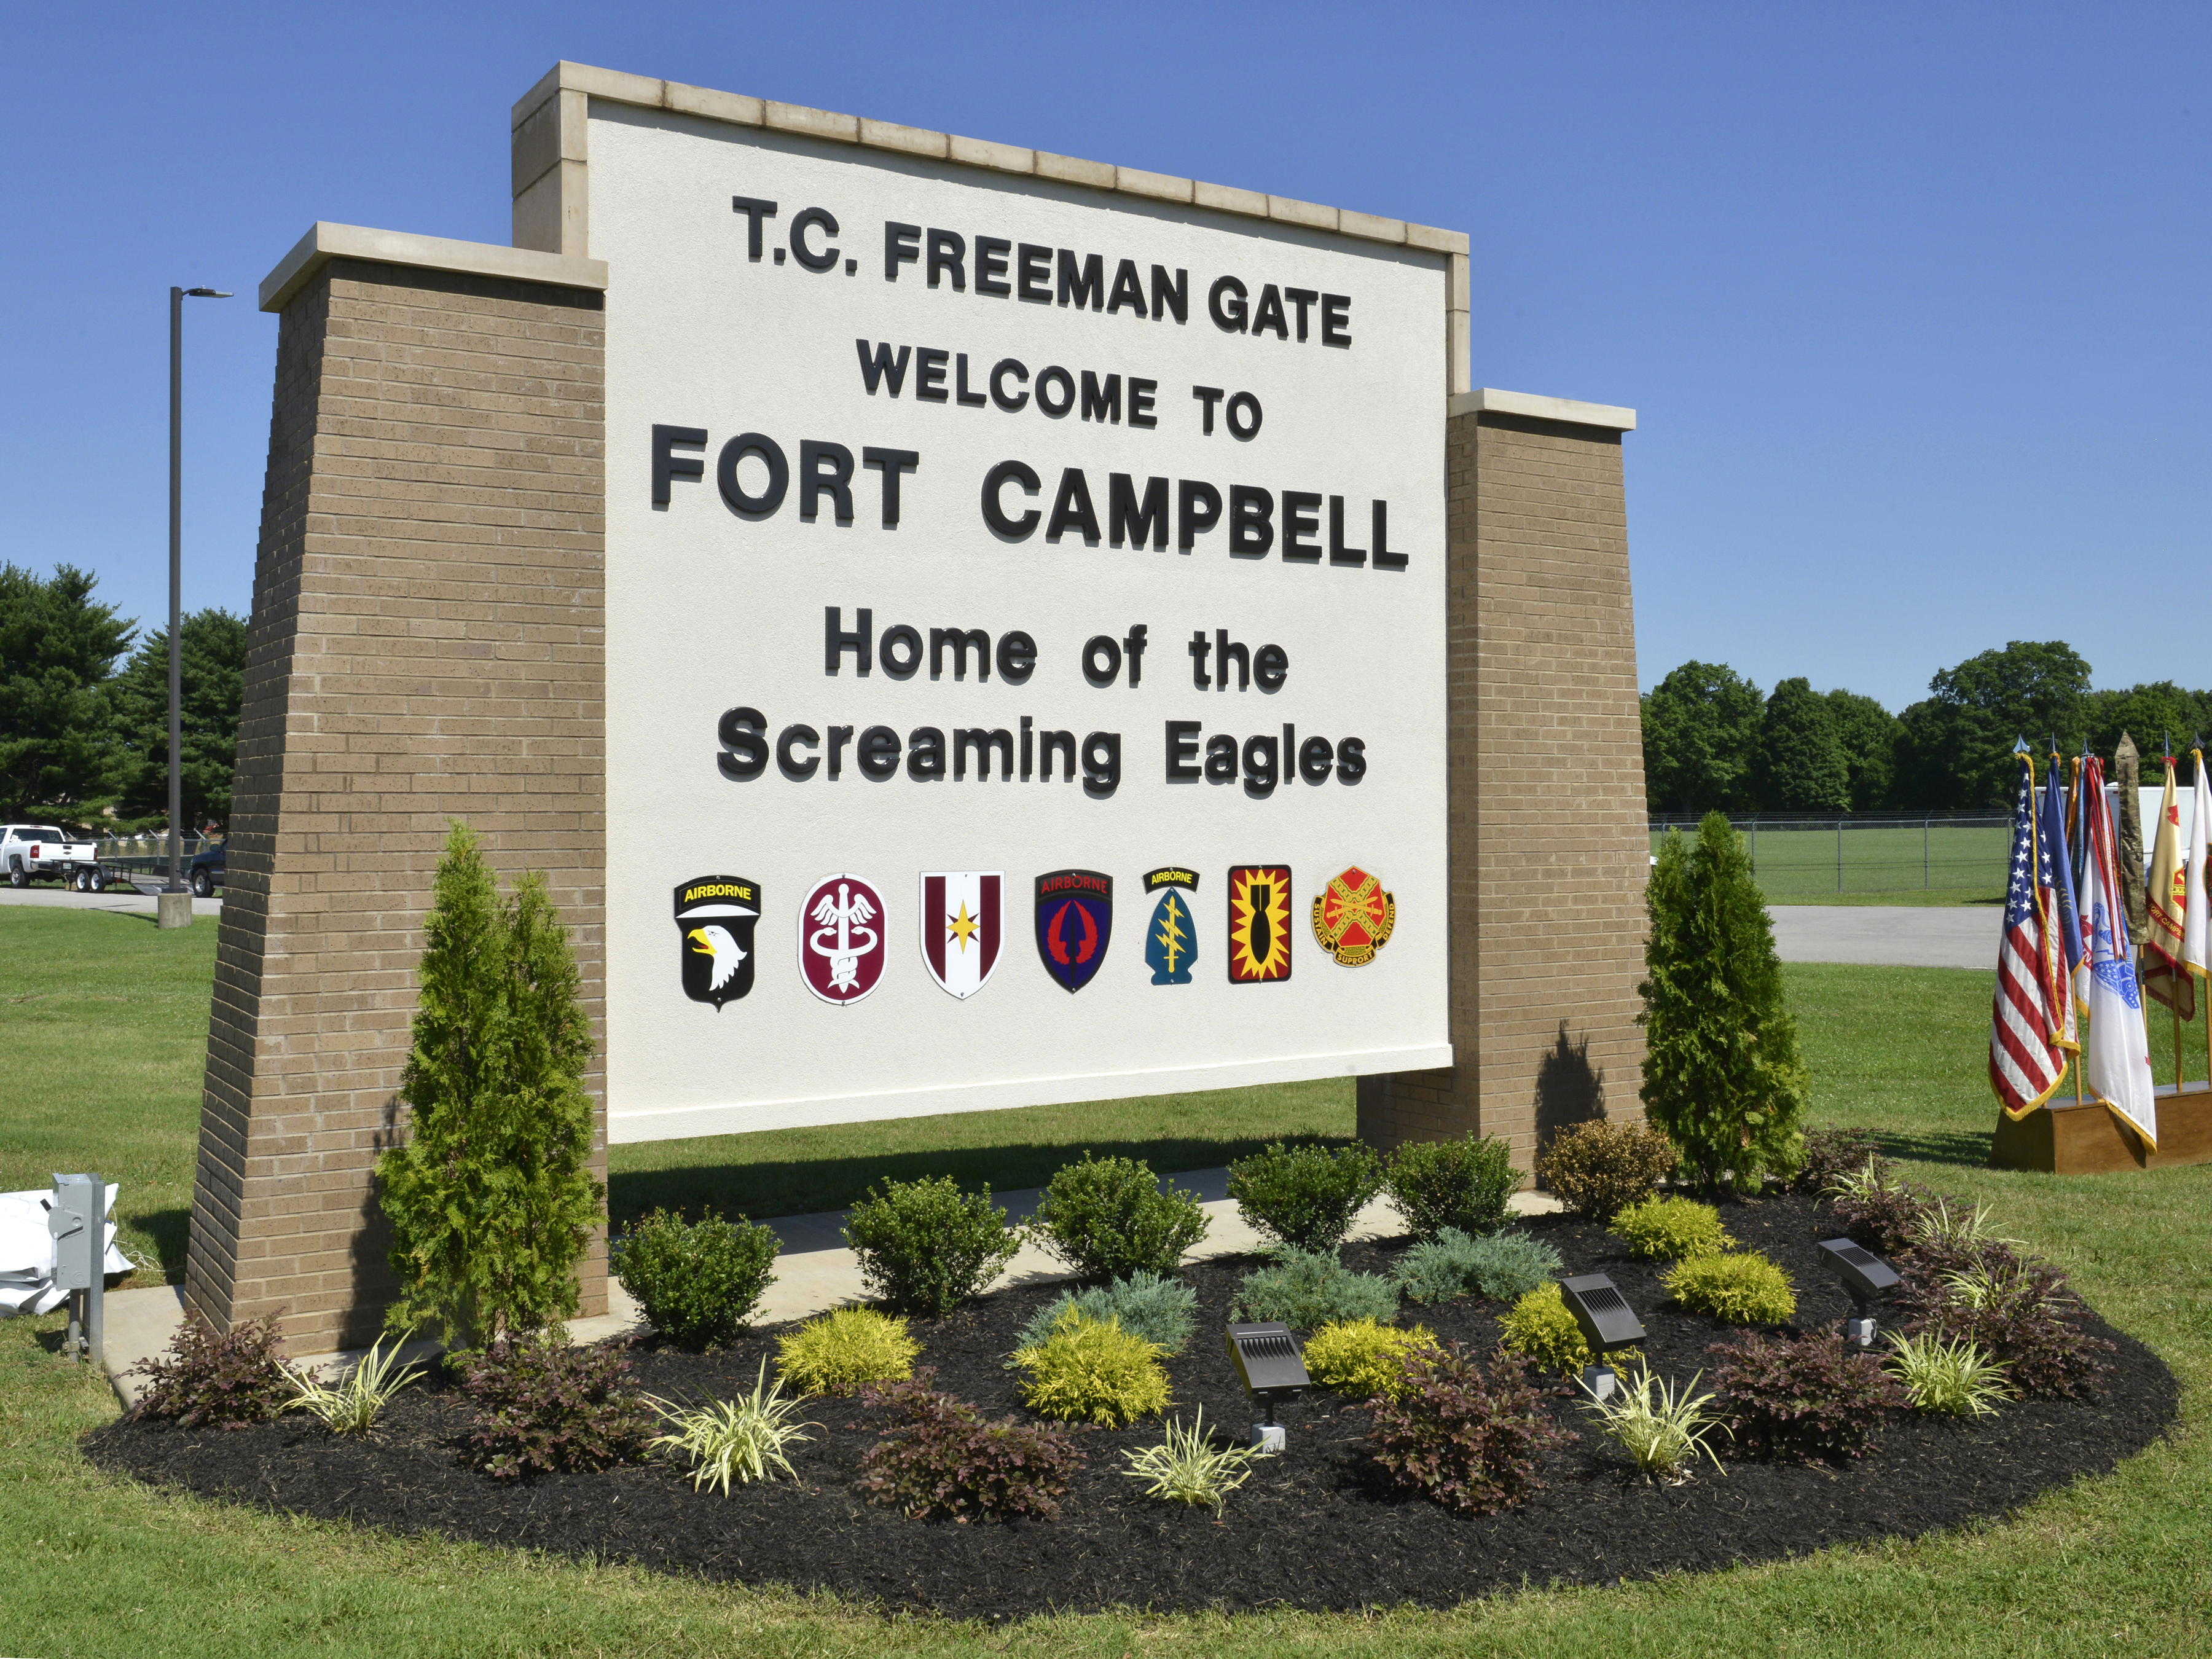 Fort Campbell's Front Gate